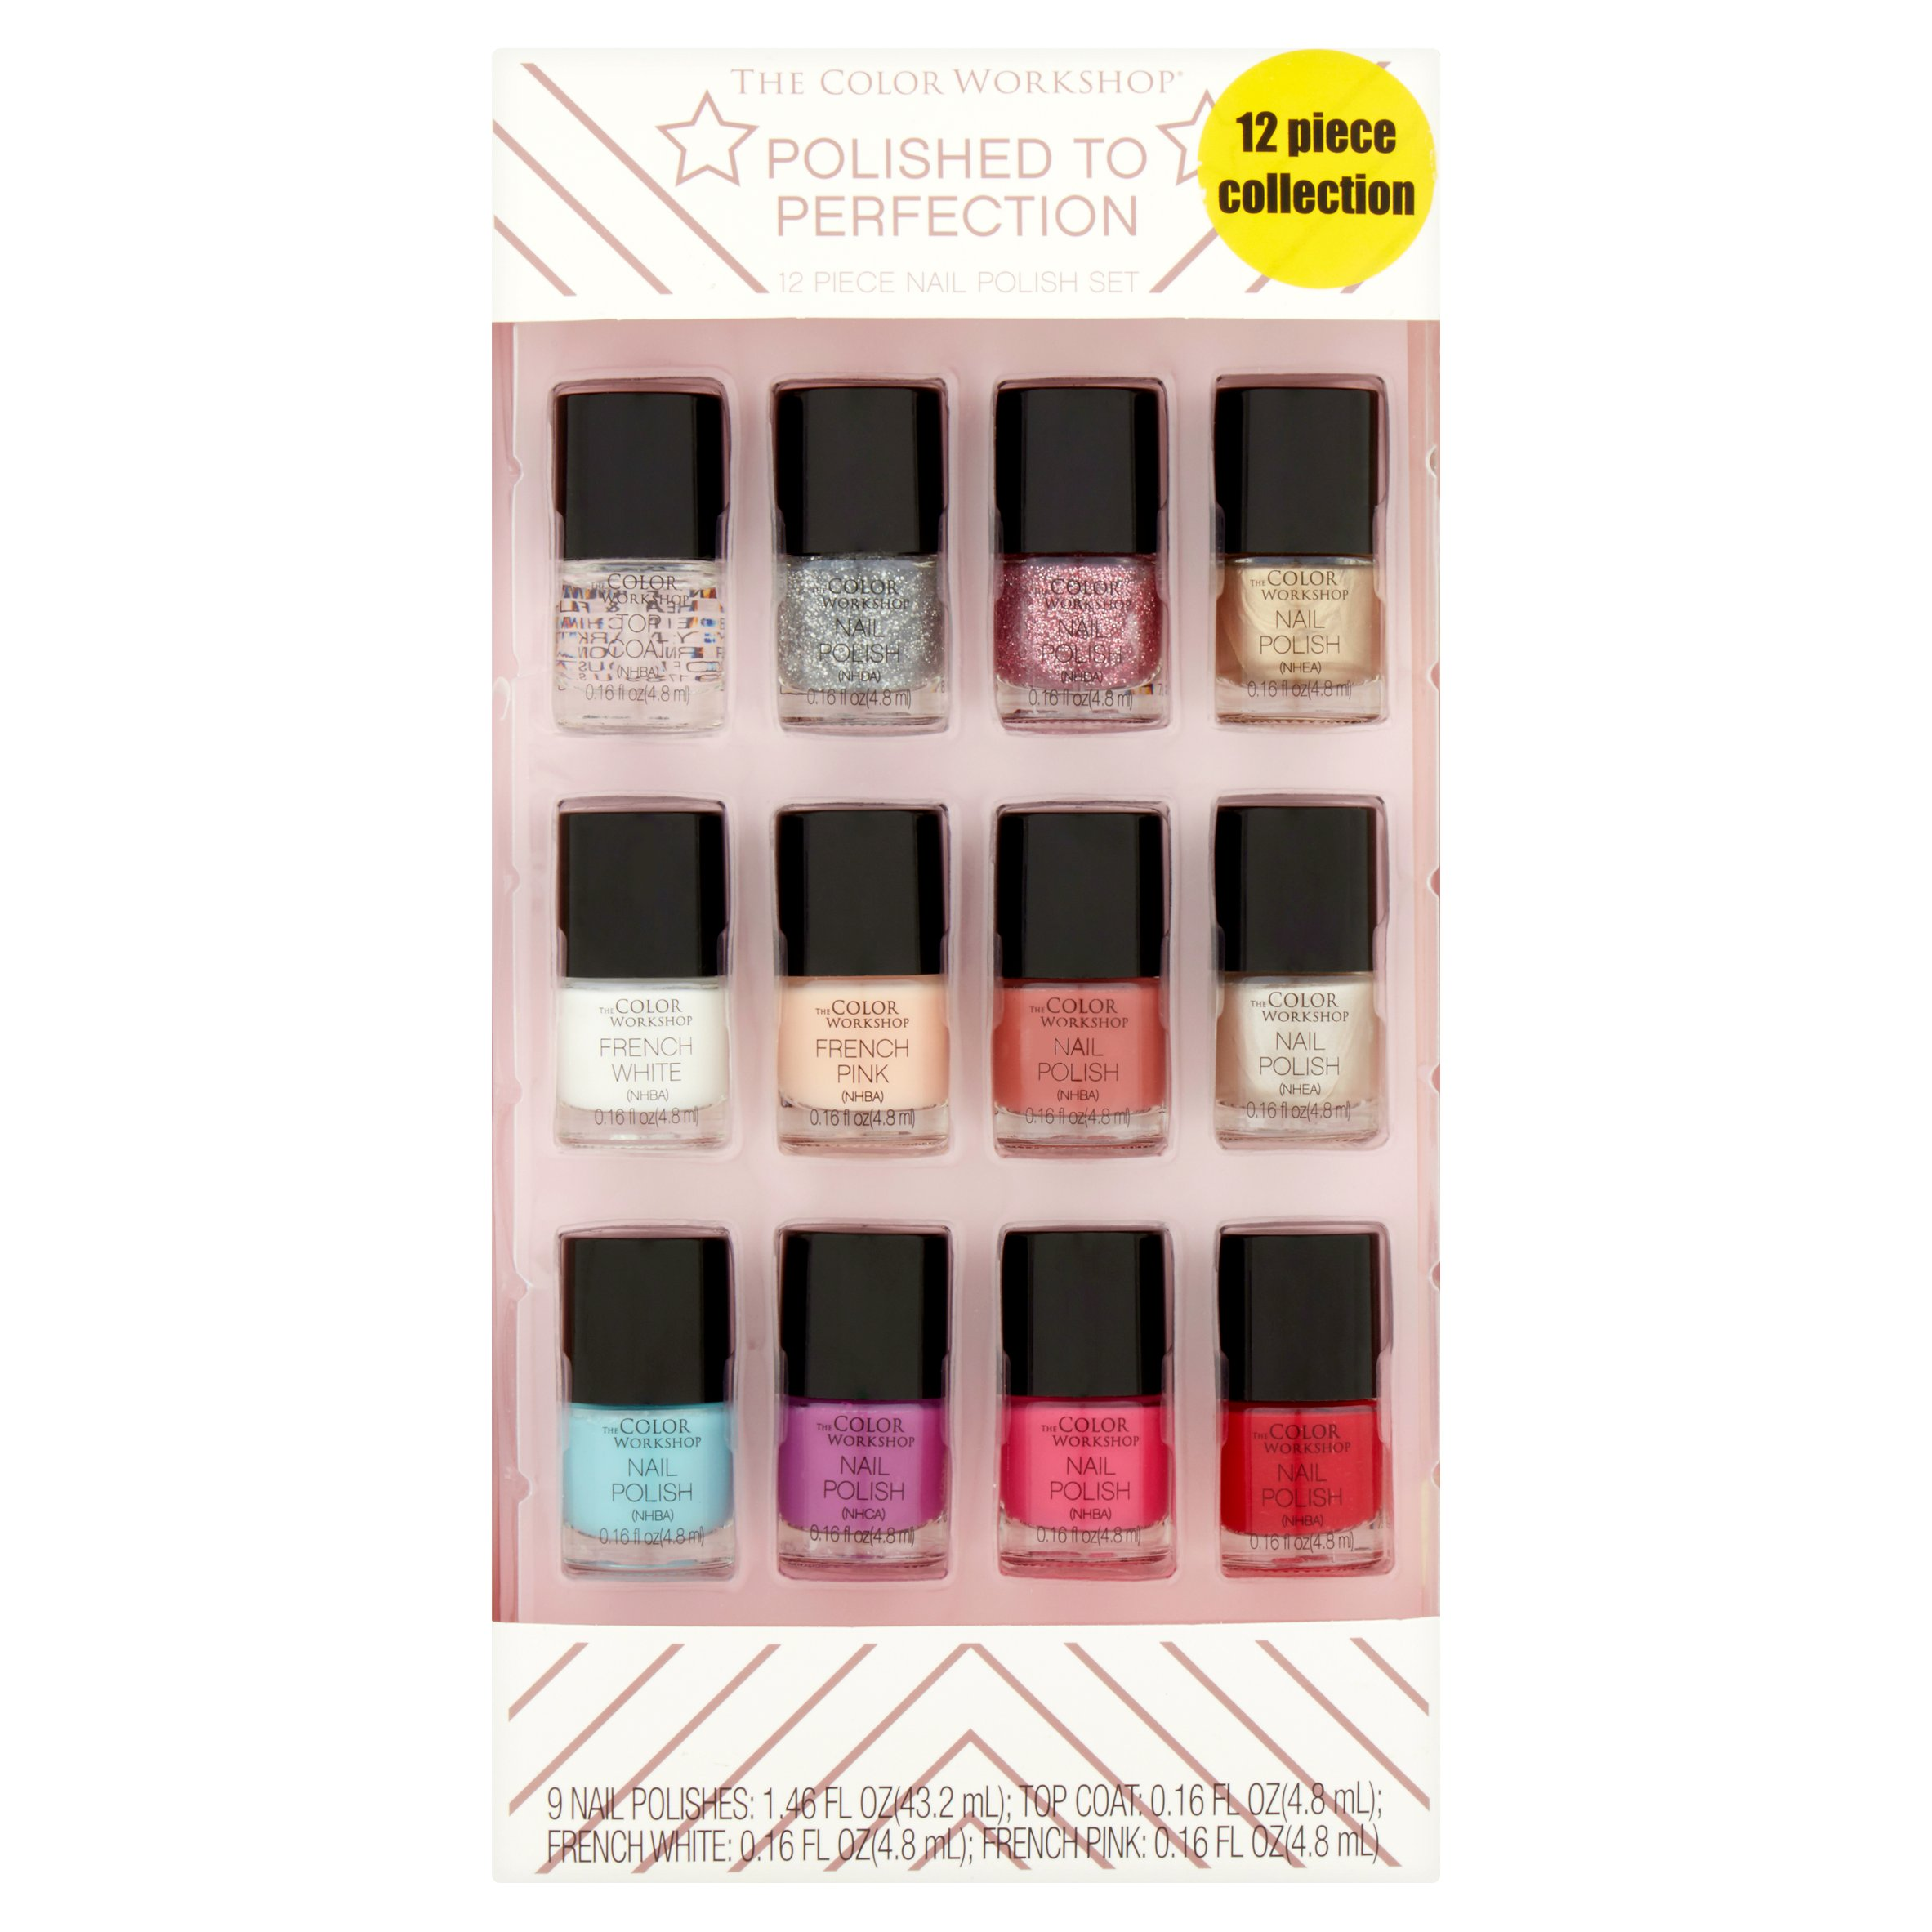 The Color Workshop Polished to Perfection Nail Polish Set, 12 piece